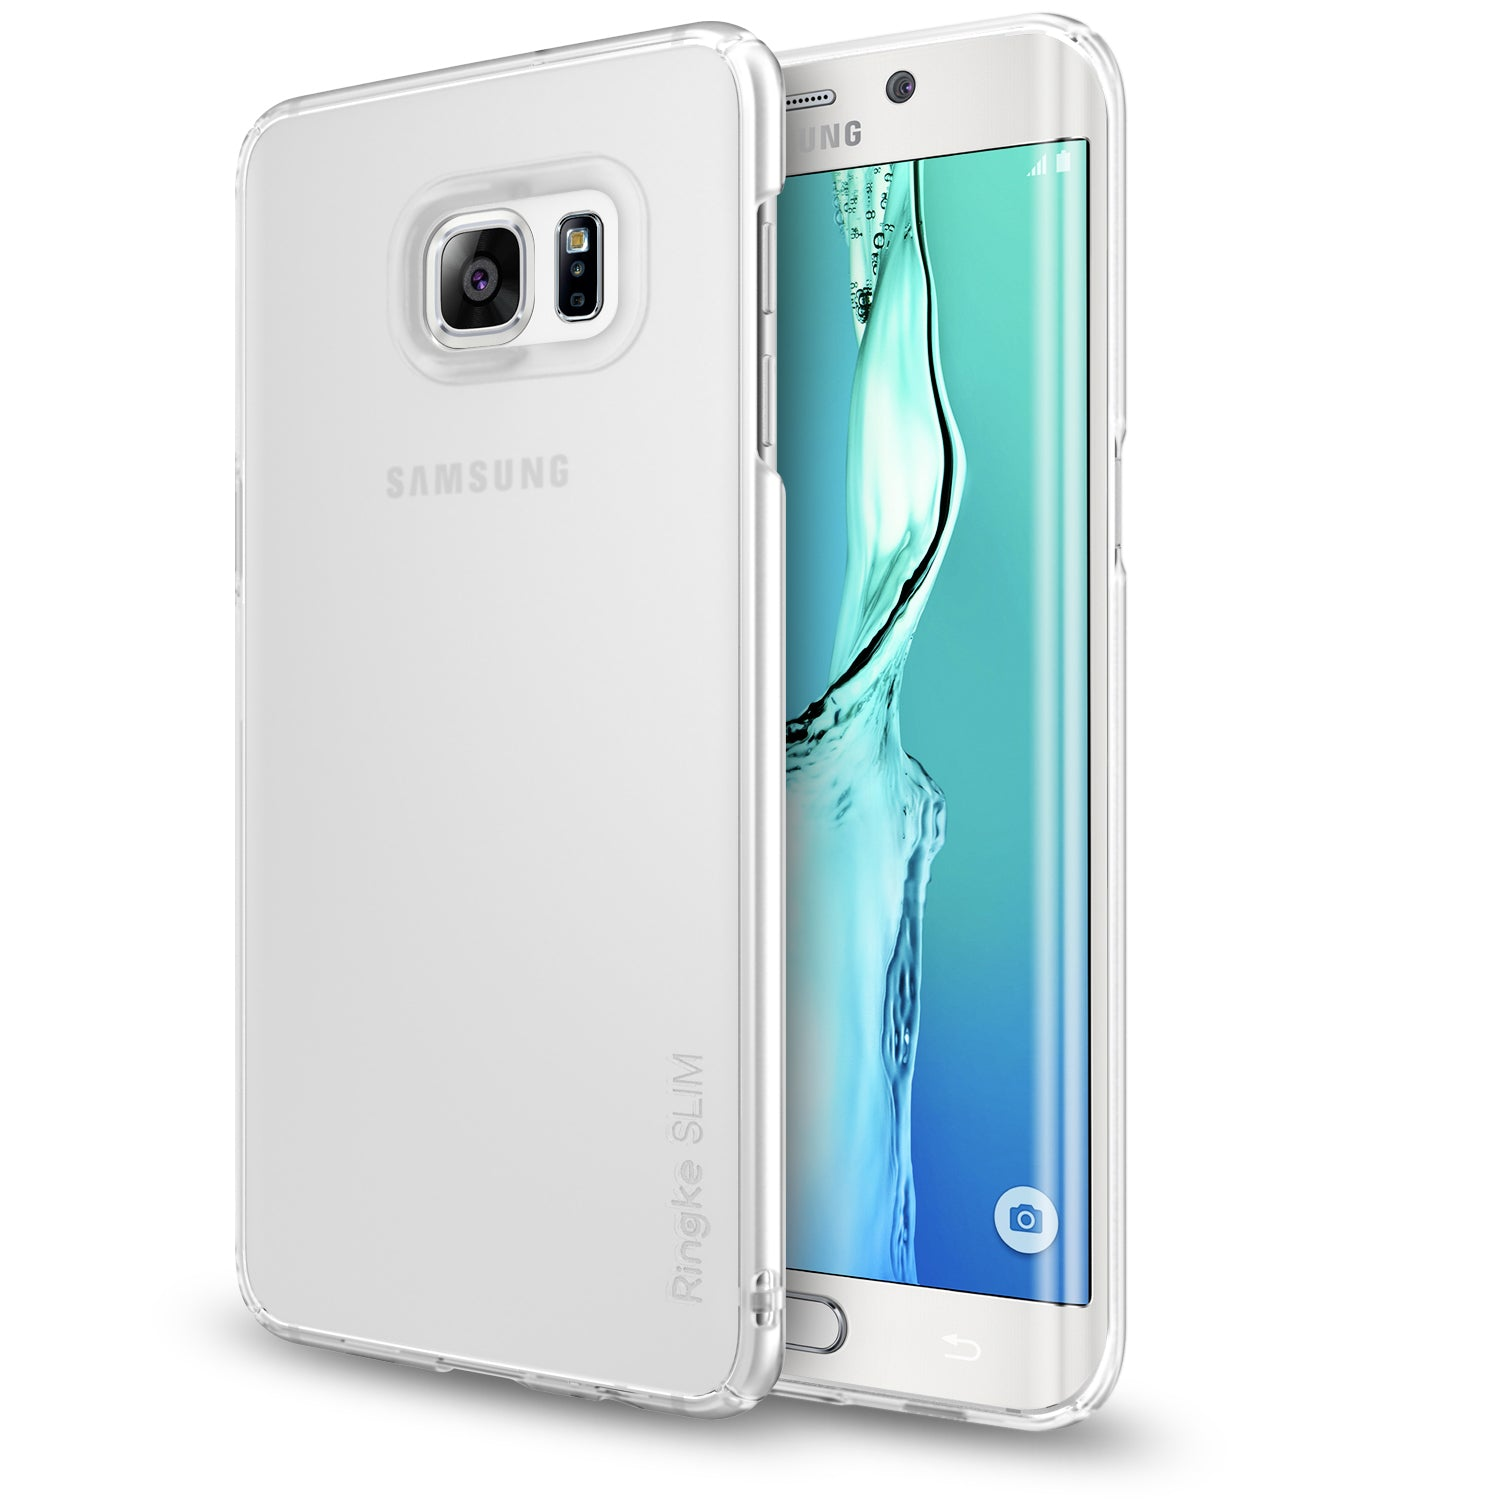 ringke slim premium thin hard pc lightweight cover case for galaxy s6 edge plus frost white